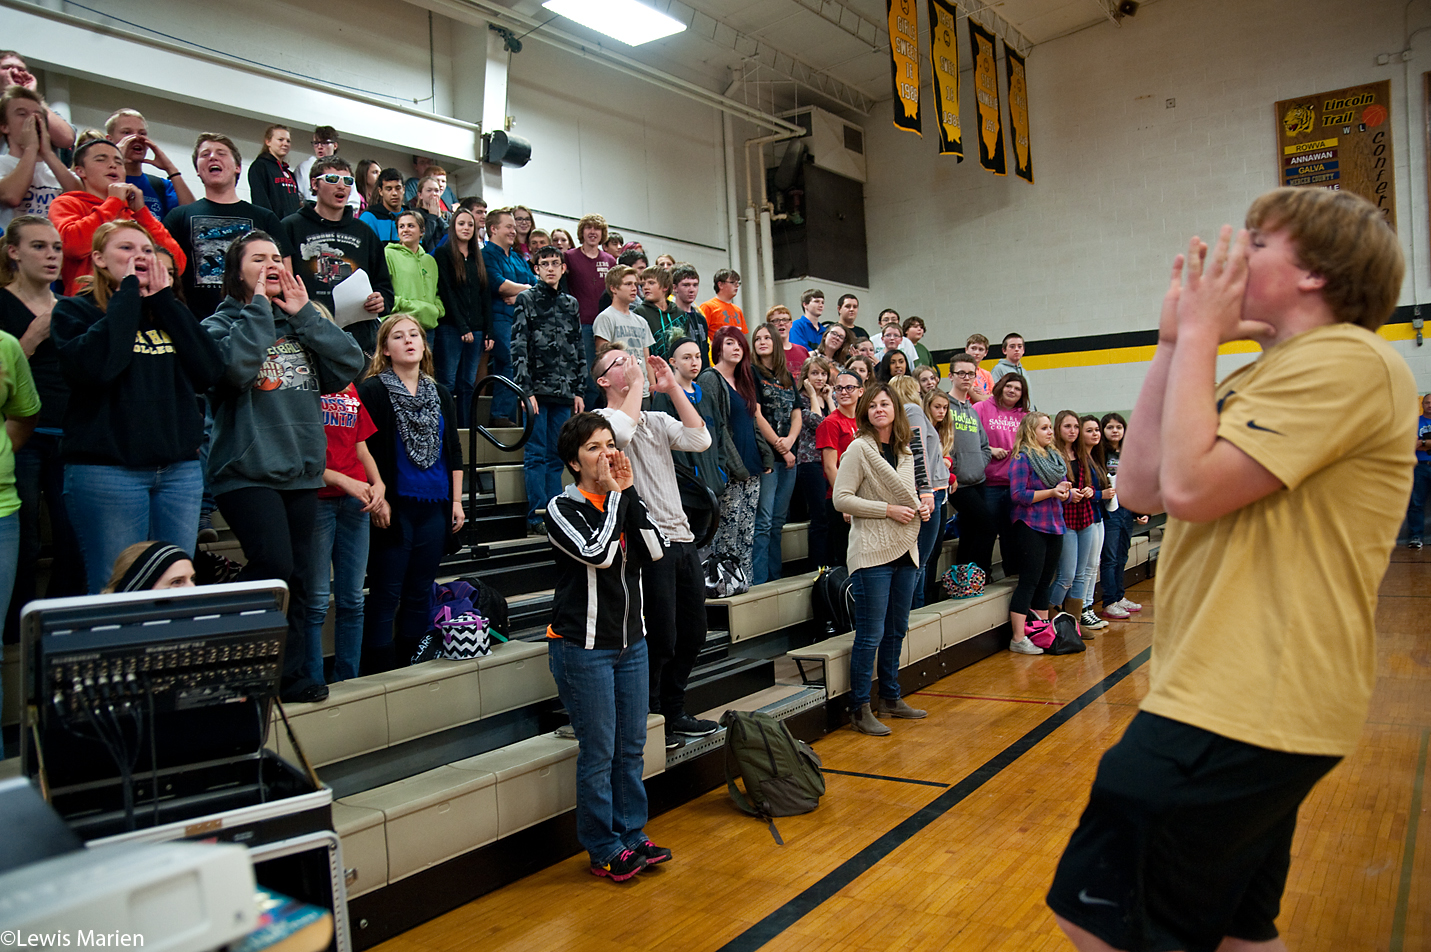 """ROWVA High School sophomore Charlie Gibbons, right, leads a group of students in the chant """"2n2 is what we do"""" during a pep rally Nov. 6 in the school's gymnasium. The school located in Oneida, Ill., has been named a finalist out of 50 schools nationwide for the """"Celebrate My Drive"""" competition sponsored by State Farm, with one school receiving an Echosmith concert and 10 other schools each receiving $100,000 grants."""